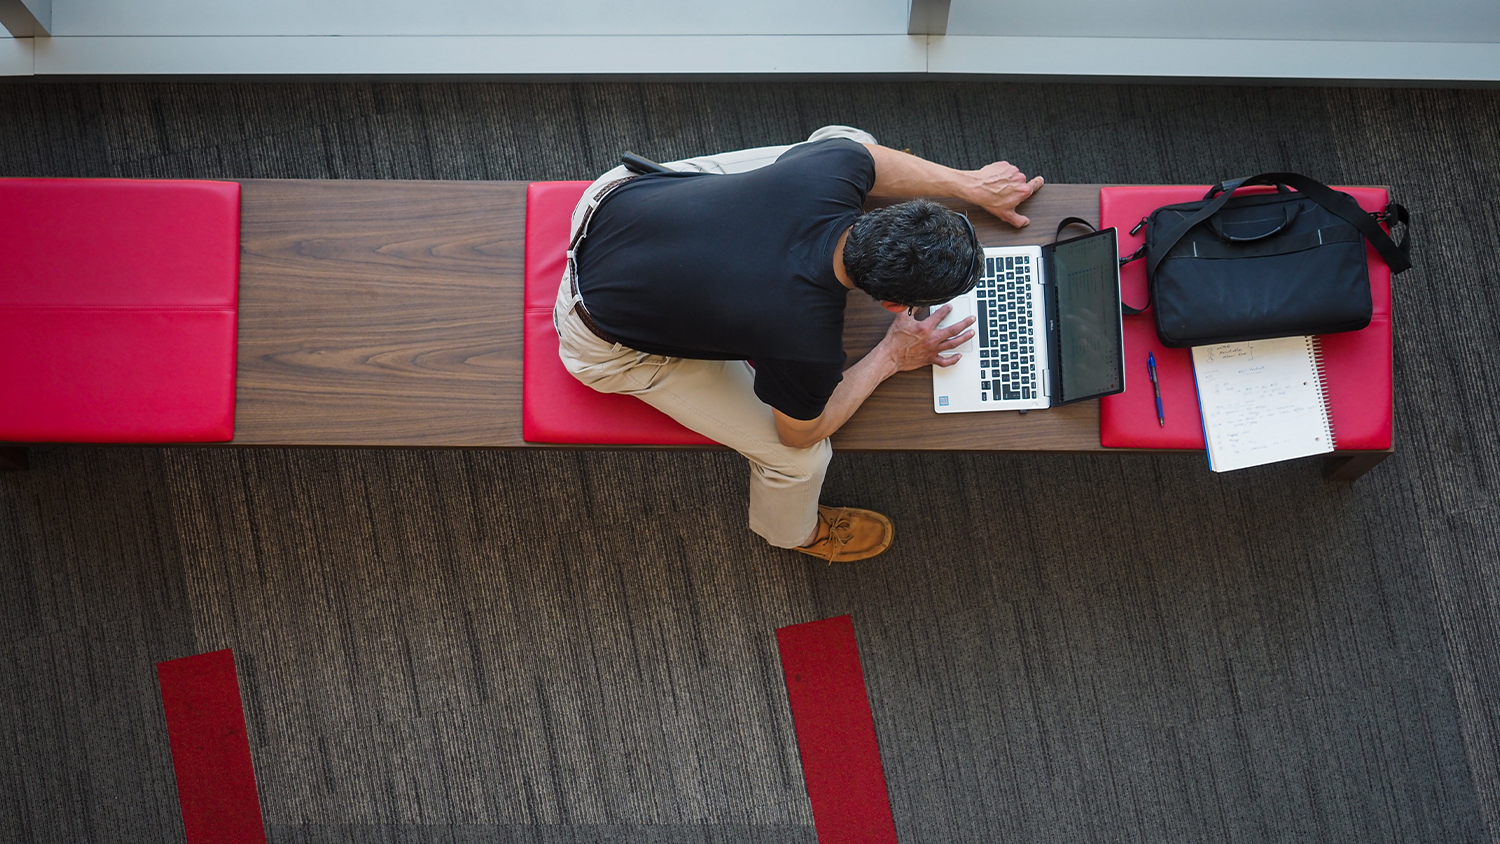 A faculty member is seen working on a laptop from an arial view.